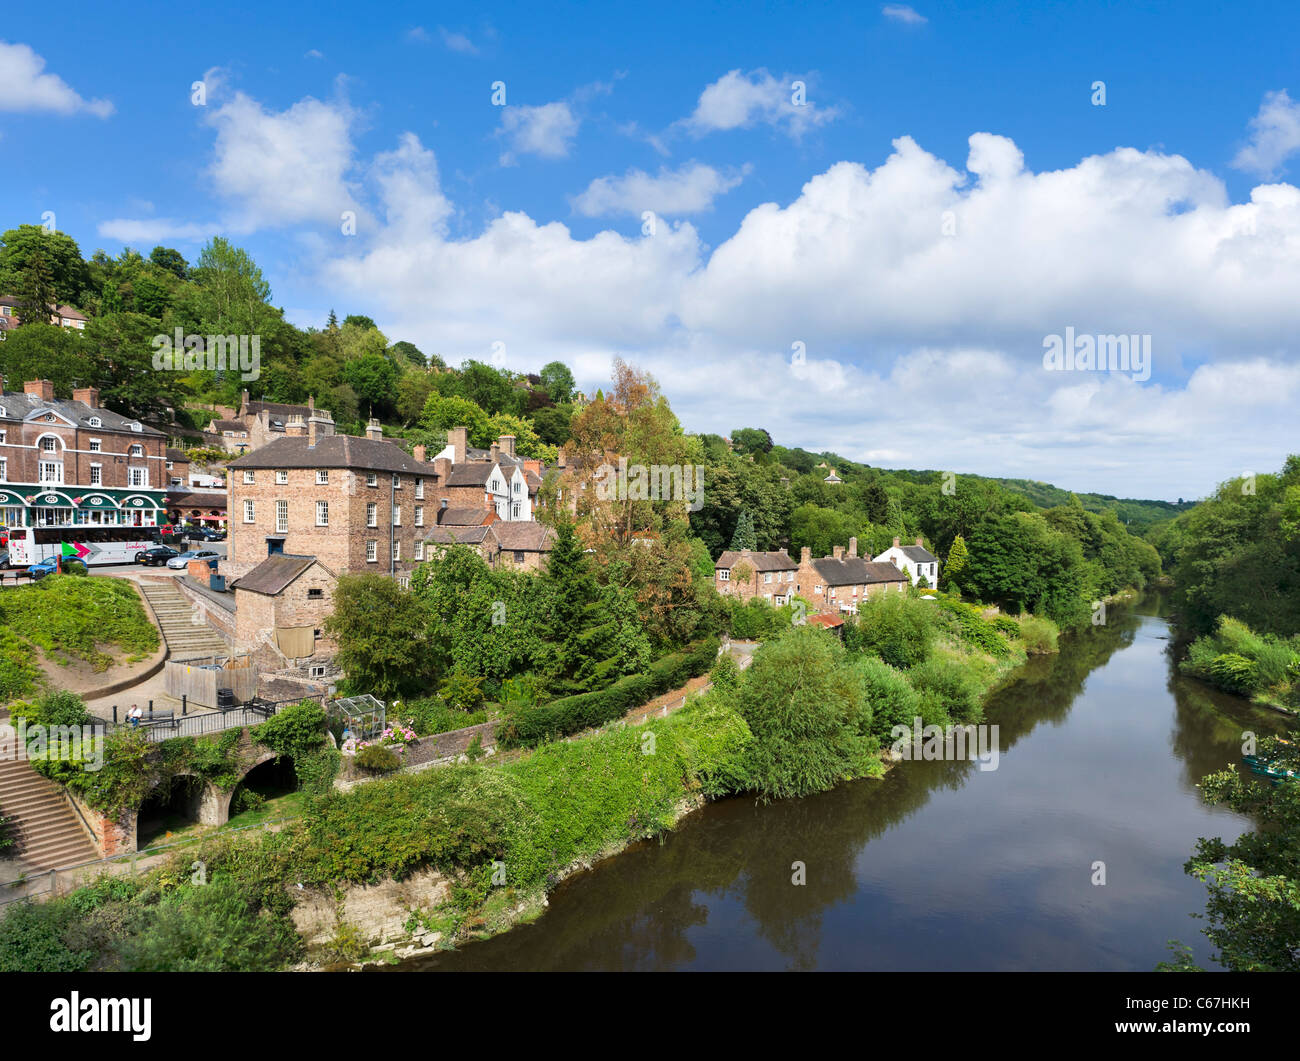 View over the River Severn from the Iron Bridge in the town of Ironbridge, Shropshire, England, UK - Stock Image